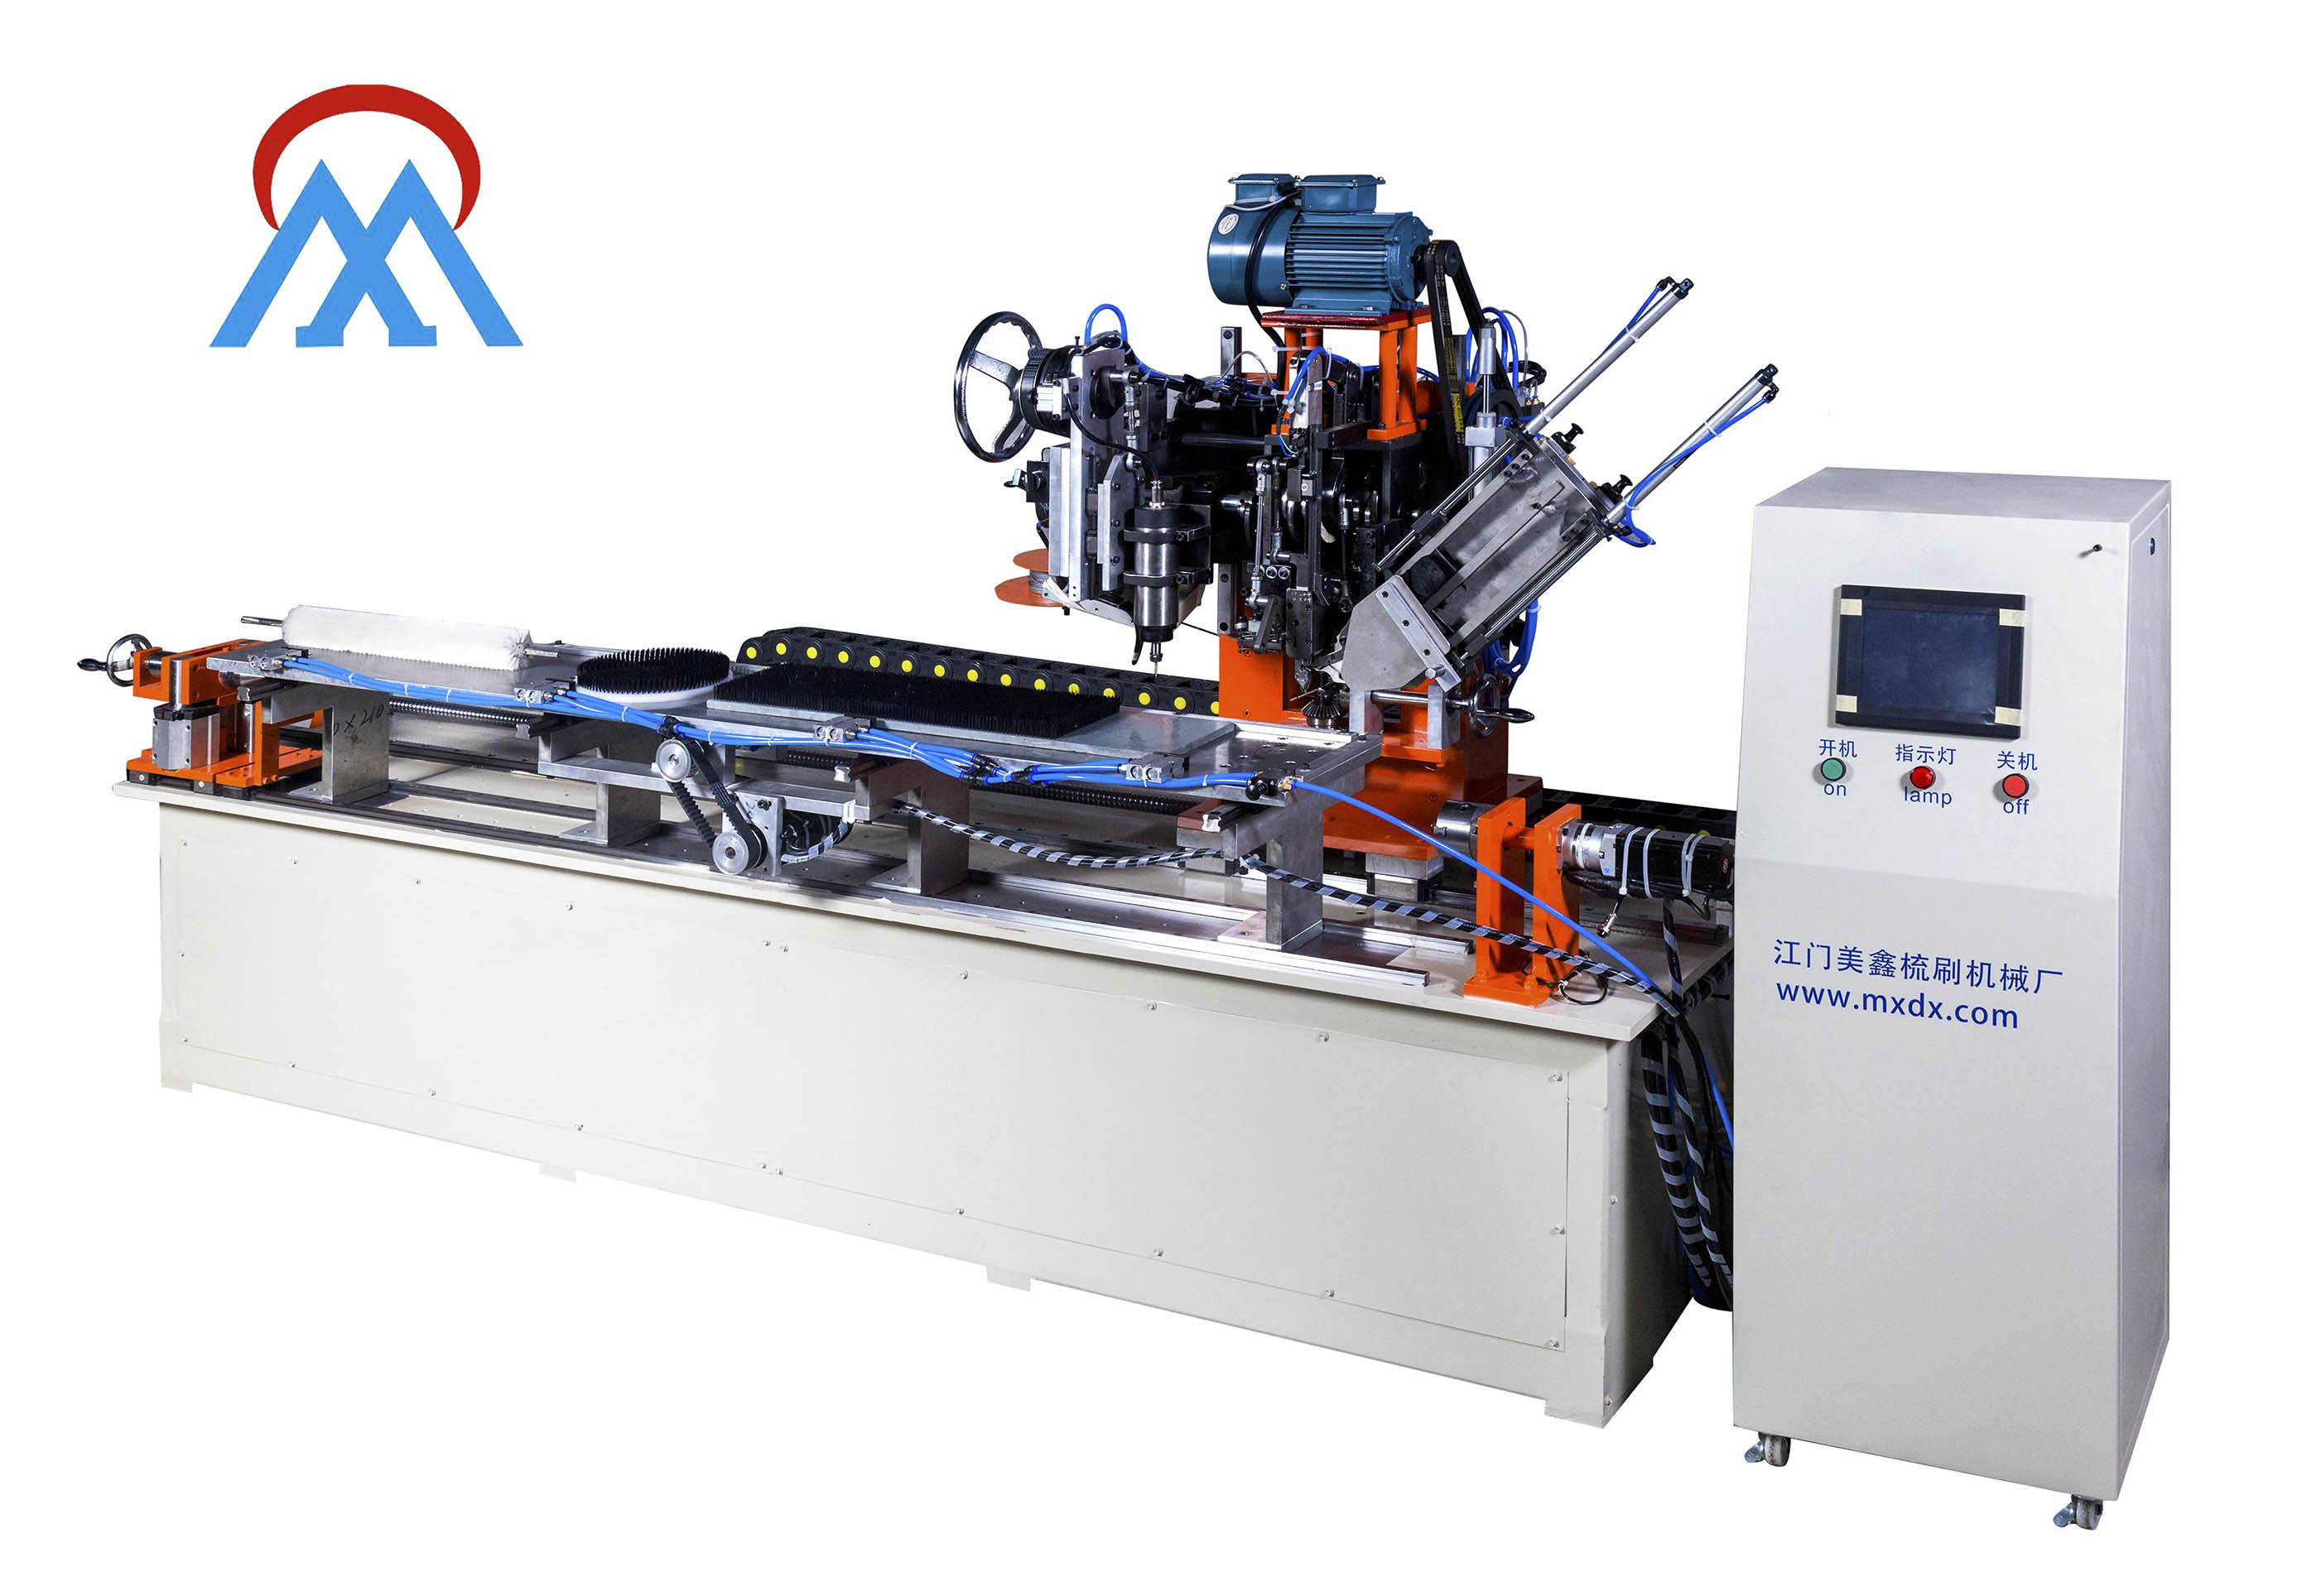 3 Axis Drilling And Tufting Machine Mx201 for flat brush, roller brush and disc brush